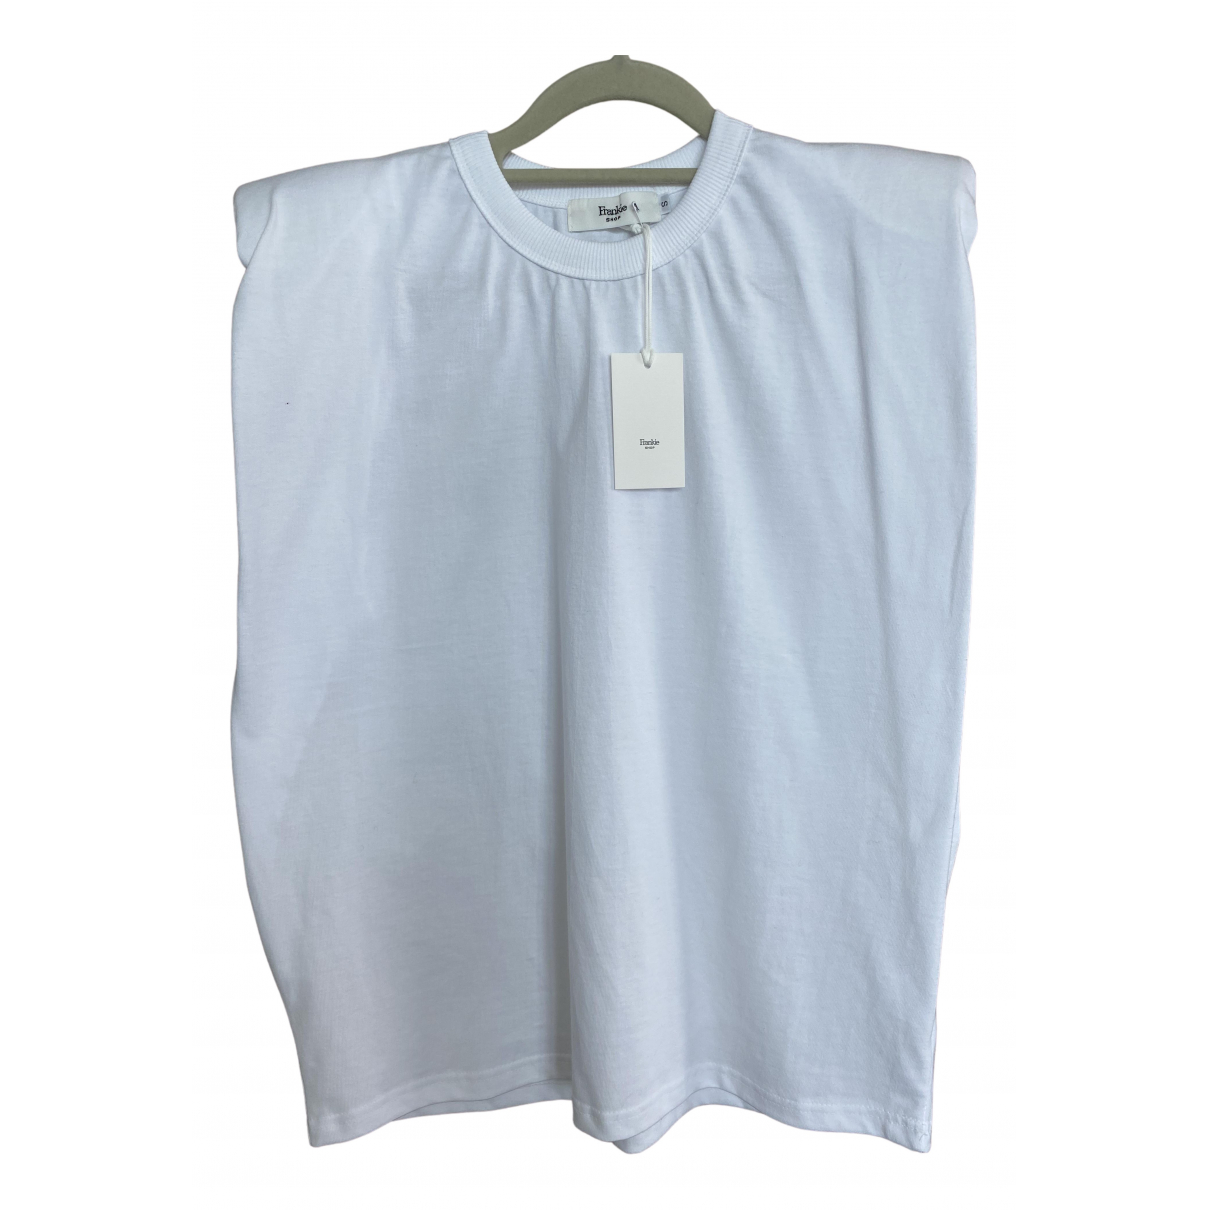 The Frankie Shop \N White Cotton  top for Women S International